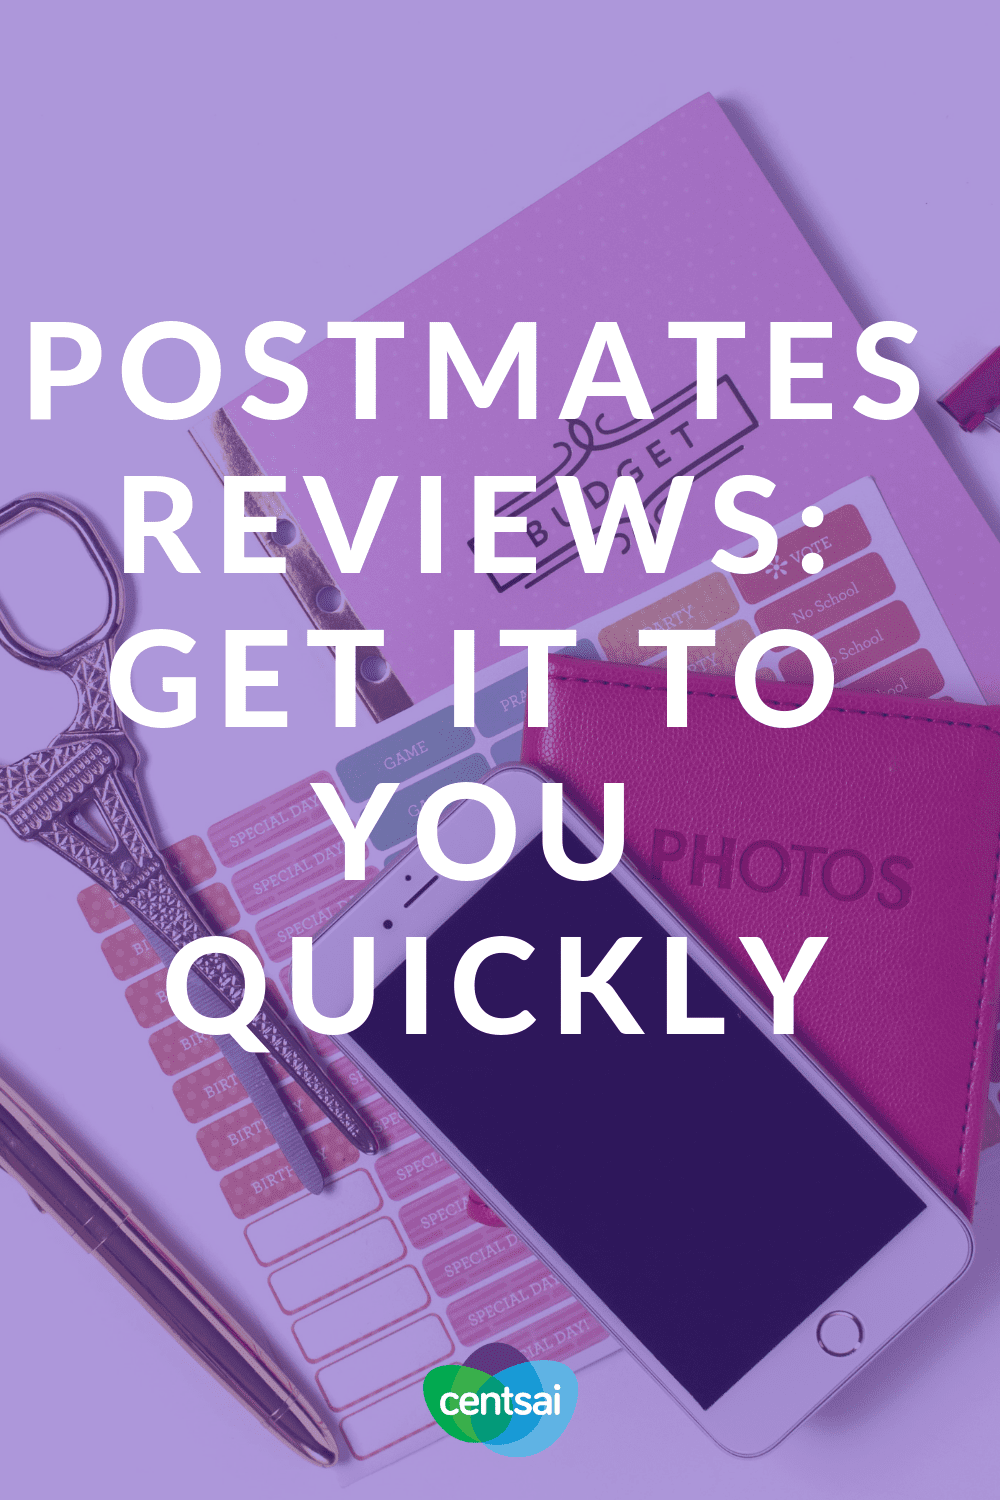 Postmates Reviews: Get It To You Quickly. Want your laundry delivered to you? Or maybe you have extra time and want to make a buck. Read Postmates reviews to see if this app will help. #postmates #review